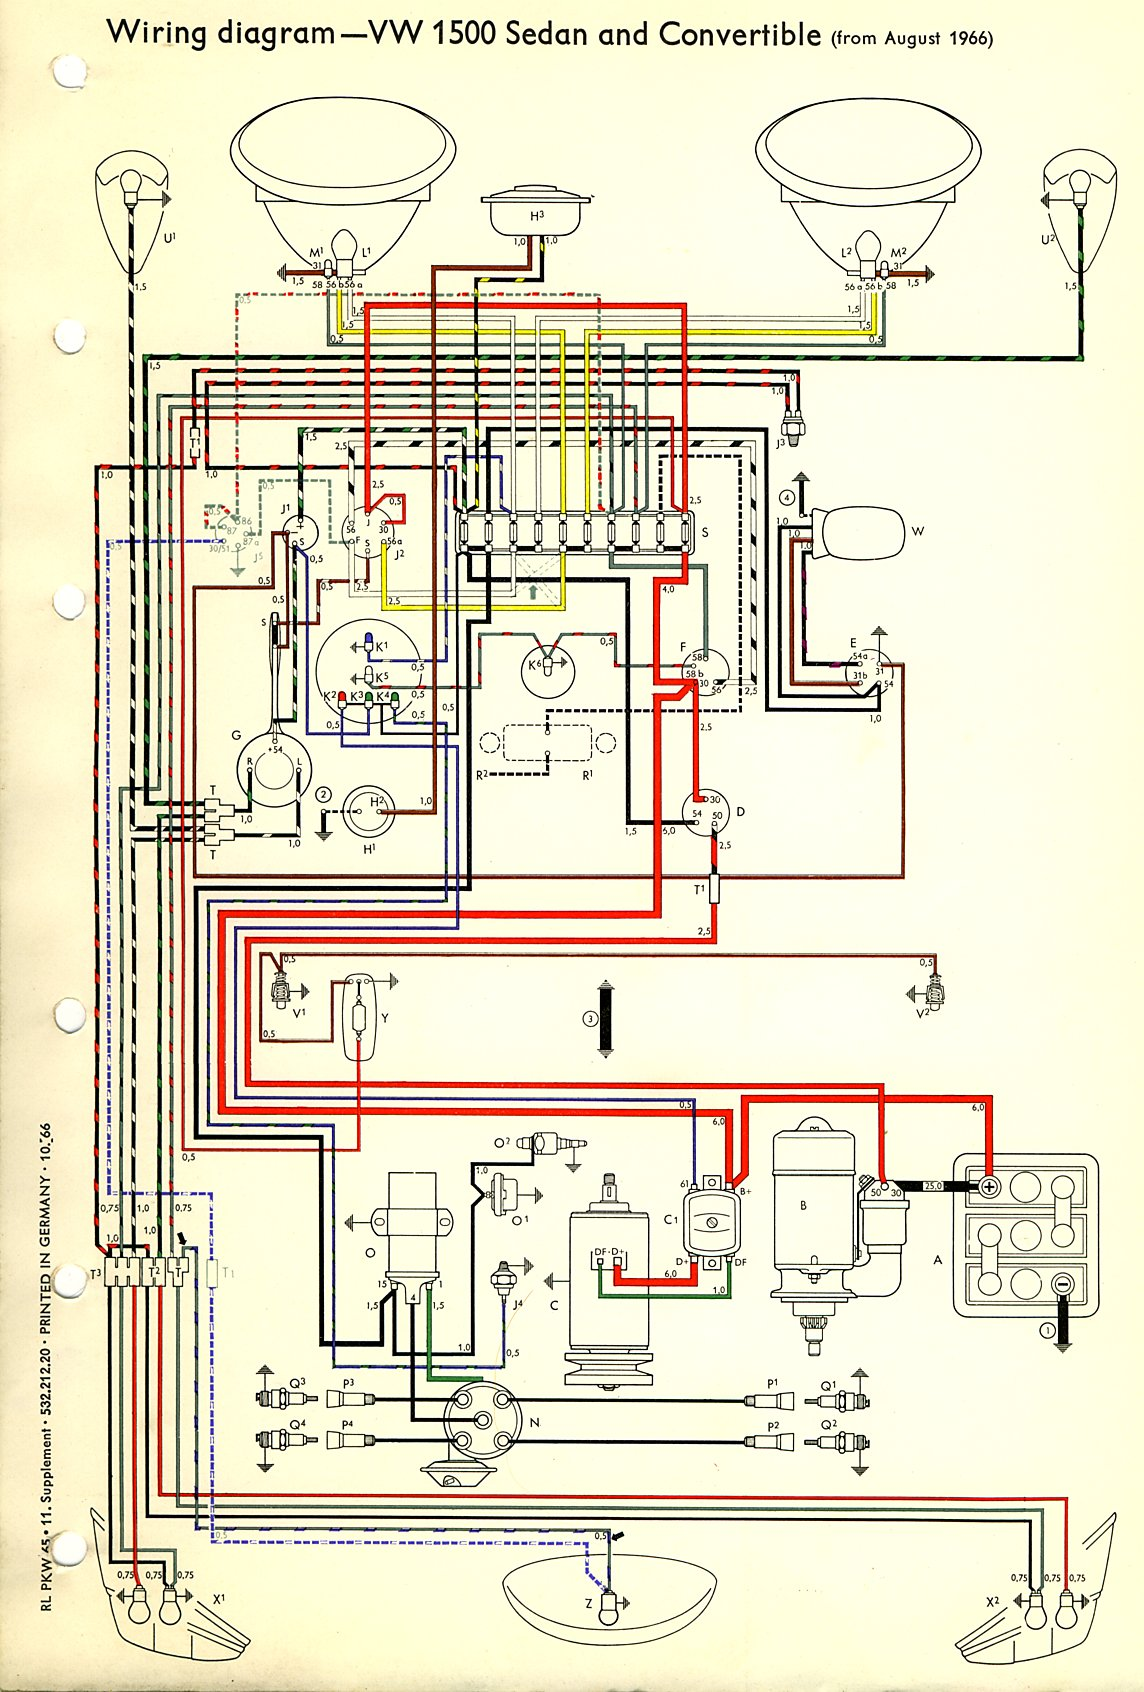 bug_67 Usa Light Switch Wiring Diagram on electrical outlets diagram, light switch cover, light switch installation, wall light switch diagram, light switch timer, dimmer switch installation diagram, light switch piping diagram, circuit diagram, light switch cabinet, light switch power diagram, light switch with receptacle,